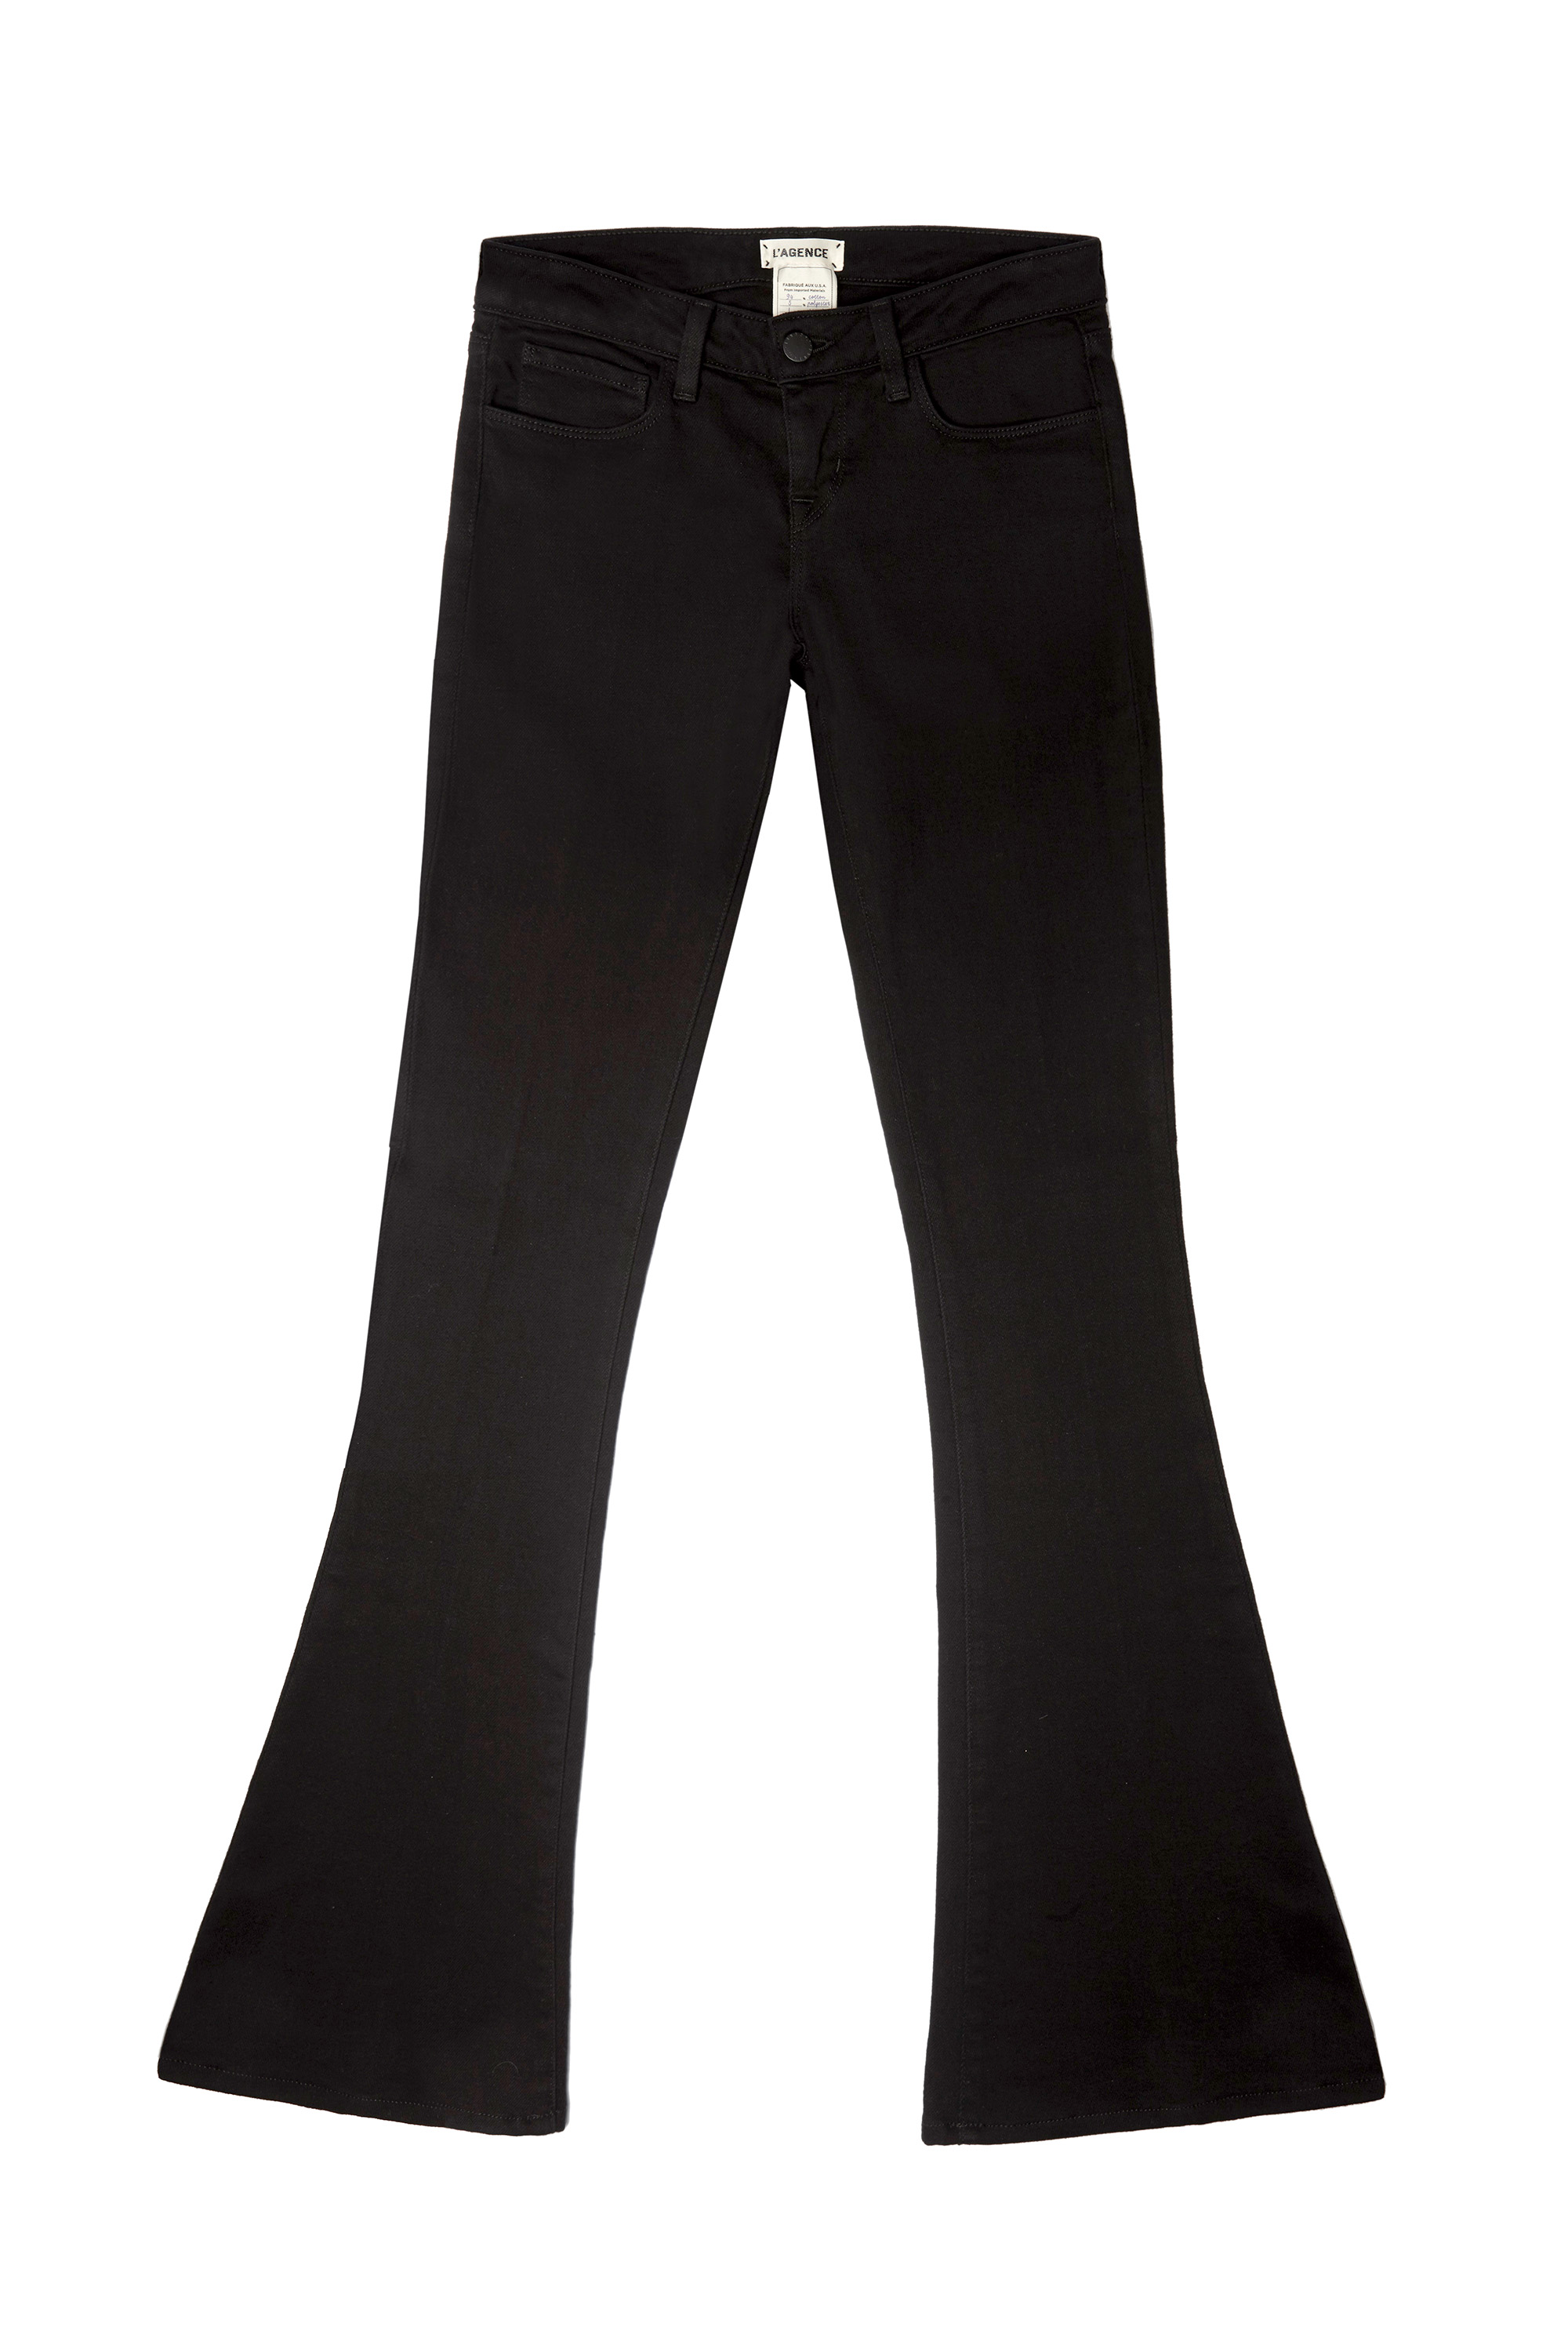 23 Flared Jeans For Fall - Best Pairs of Flared Jeans for Fall